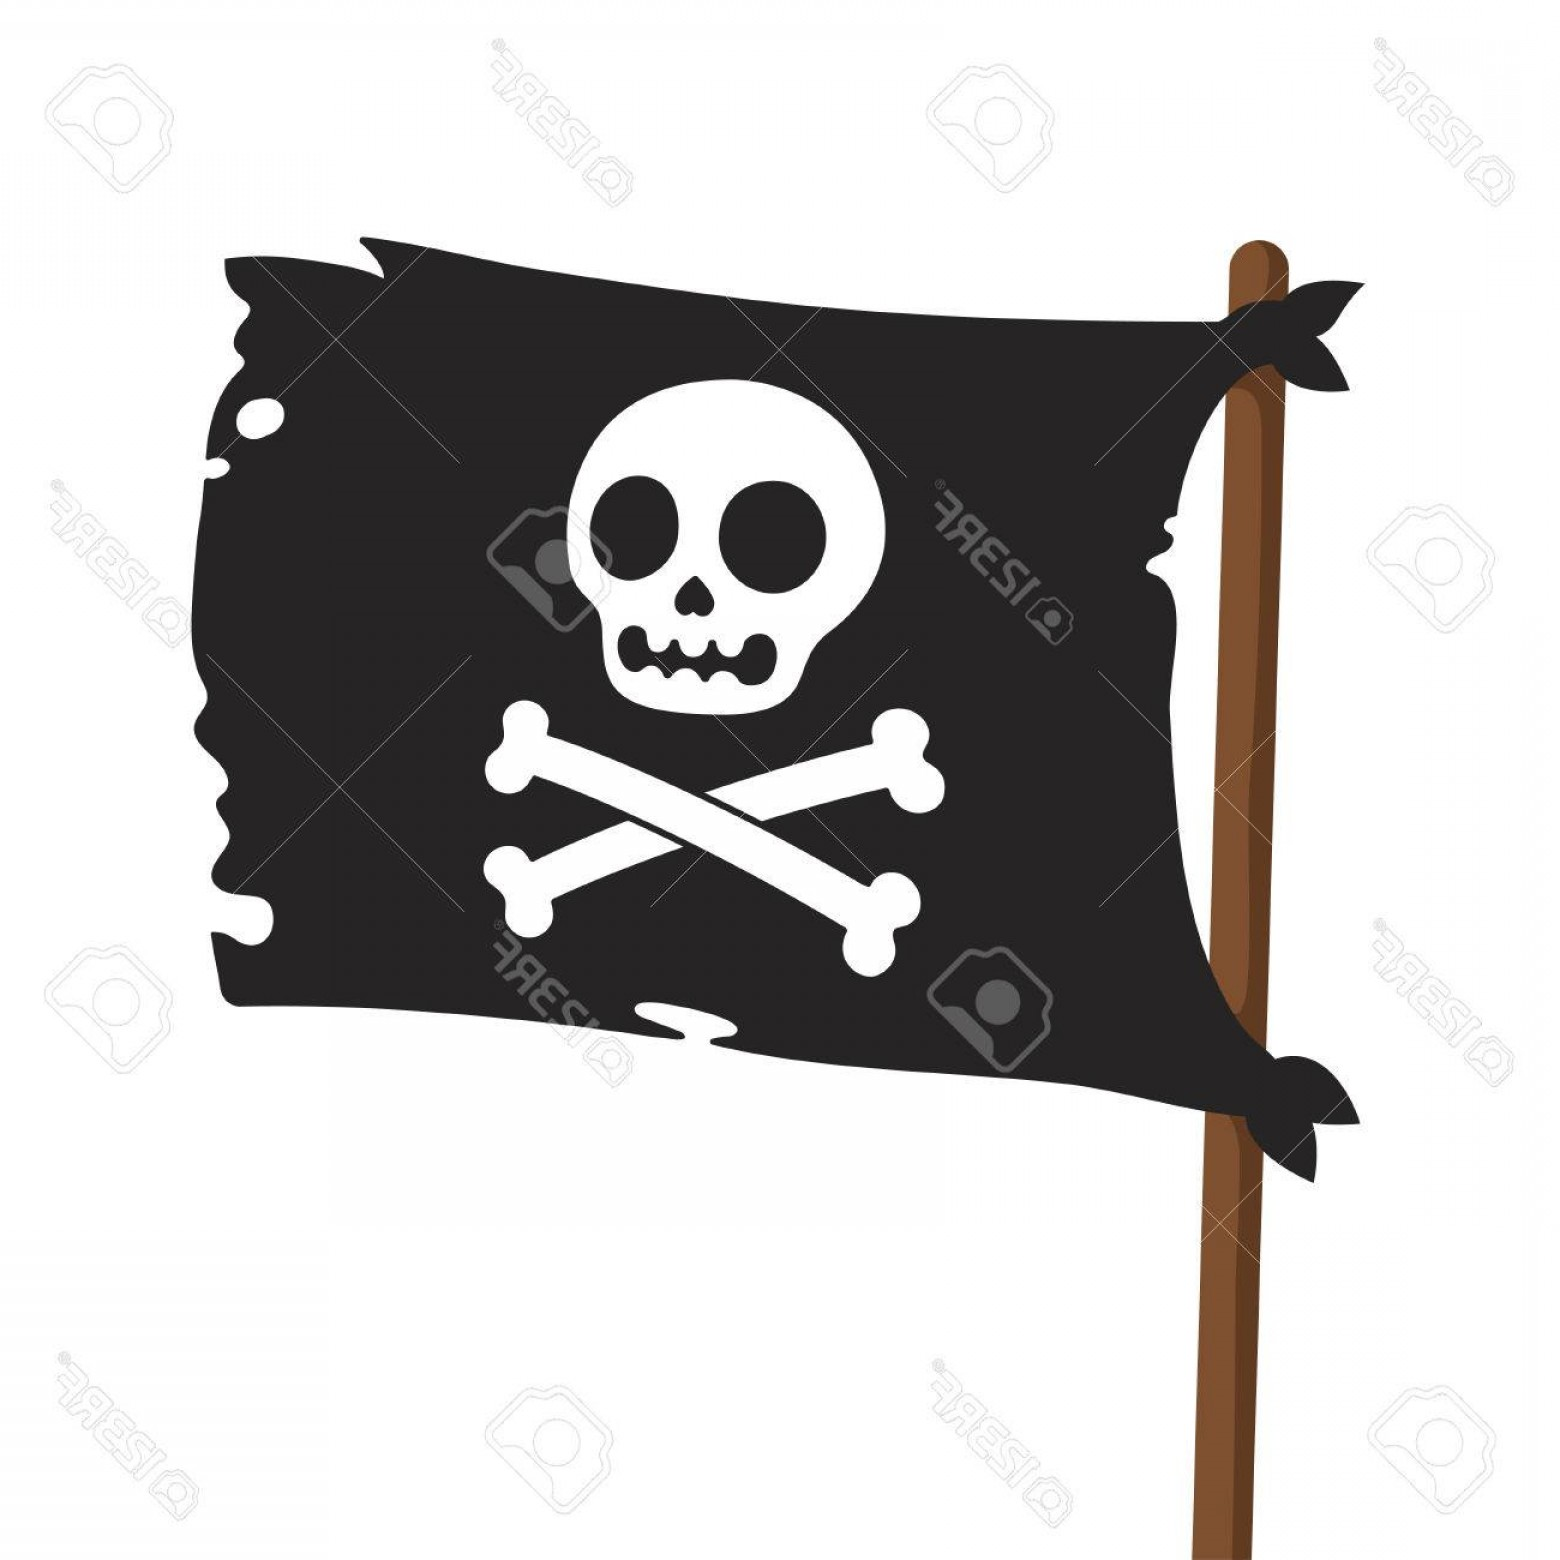 1560x1560 Photostock Vector Black Pirate Flag Illustration Jolly Roger With